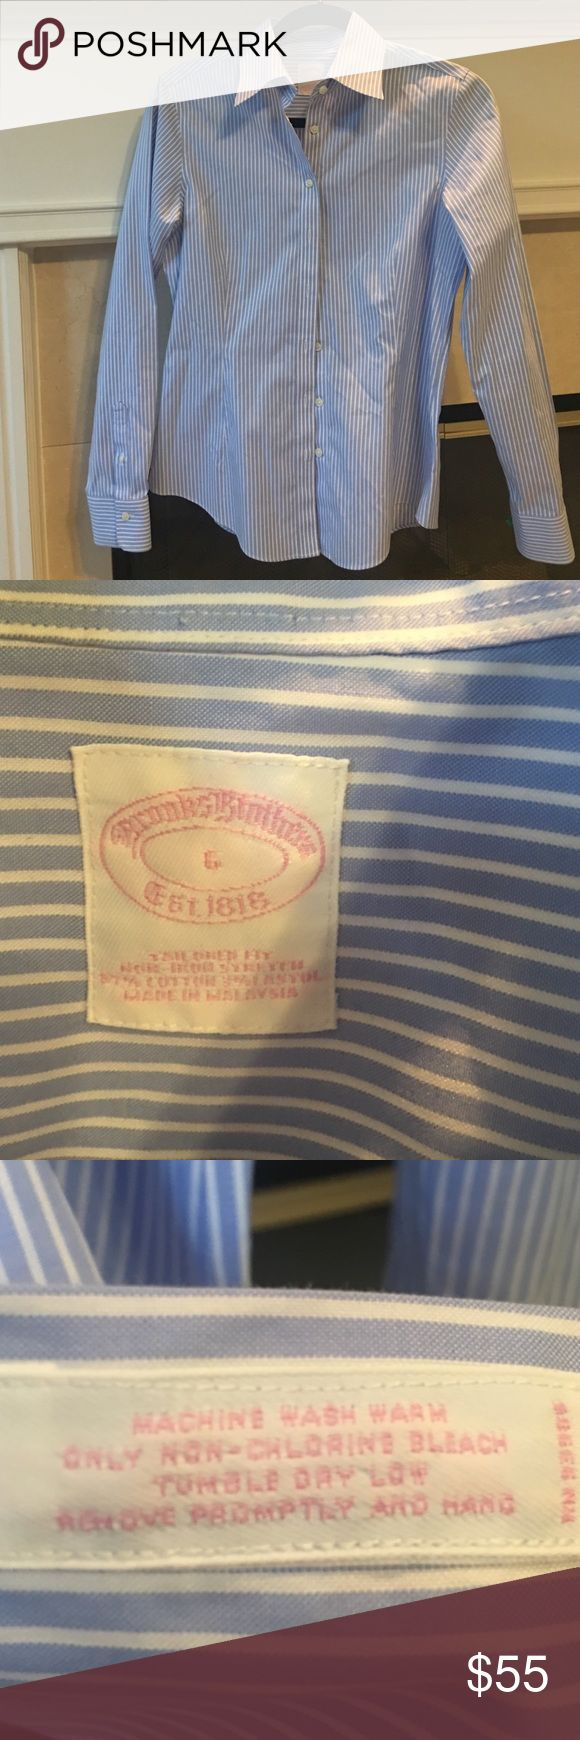 🎉Weekend Sale $10 off Brooks Brothers Shirt Non iron, fitted and stretch Brooks Brothers button down shirt. Great for the office! 97% cotton and 3% lastol. Machine washable. Brooks Brothers Tops Button Down Shirts